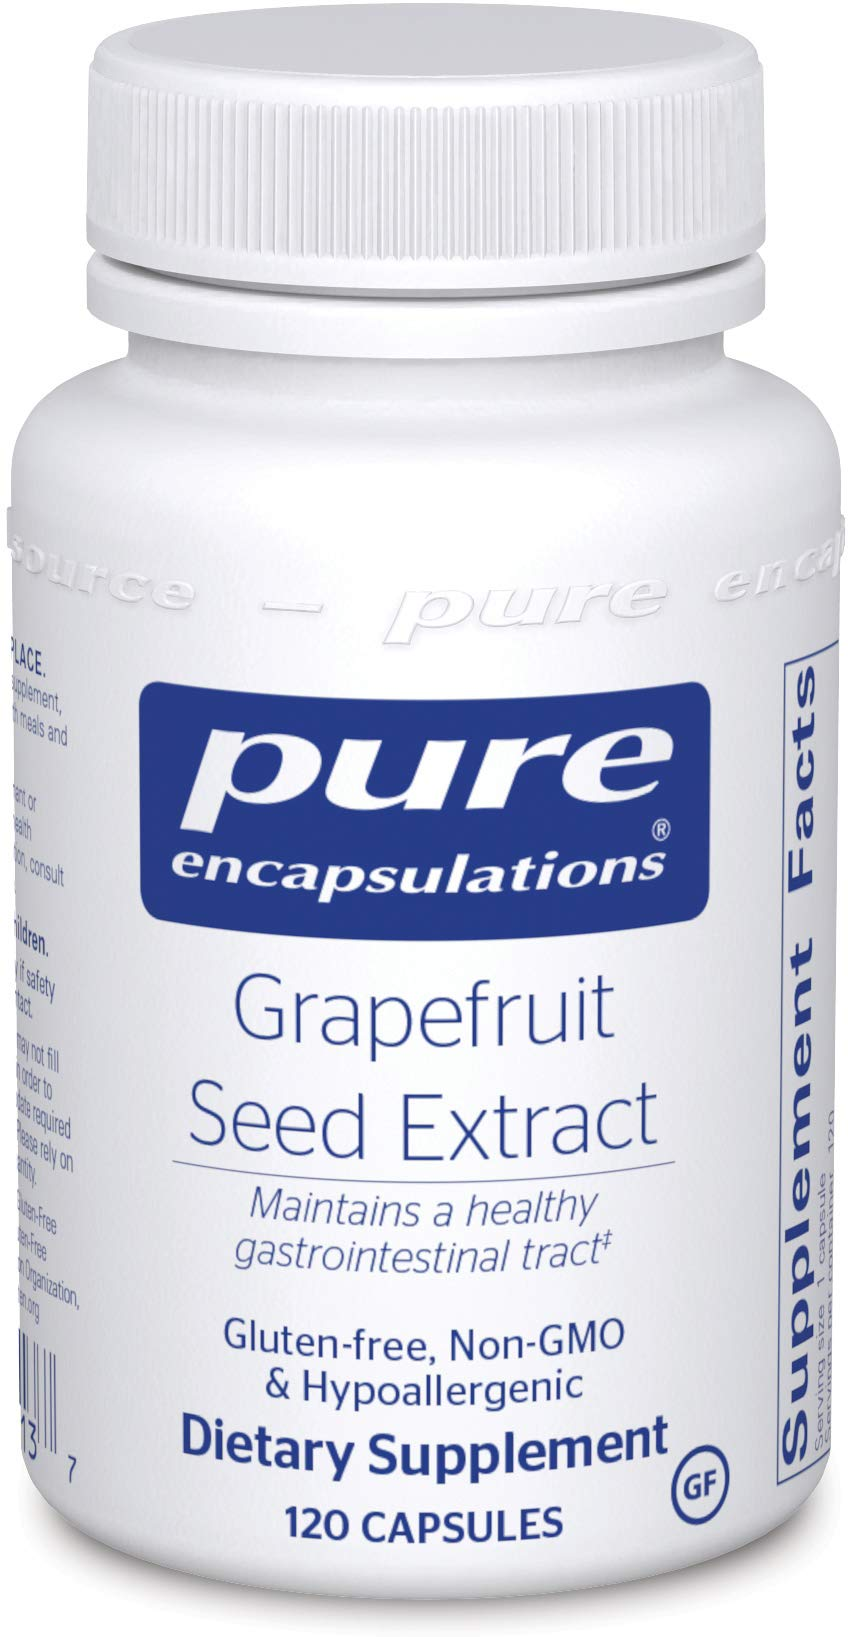 Pure Encapsulations Grapefruit Seed Extract | Supplement to Support The Balance of Intestinal Microorganisms and G.I. Tract* | 120 Capsules